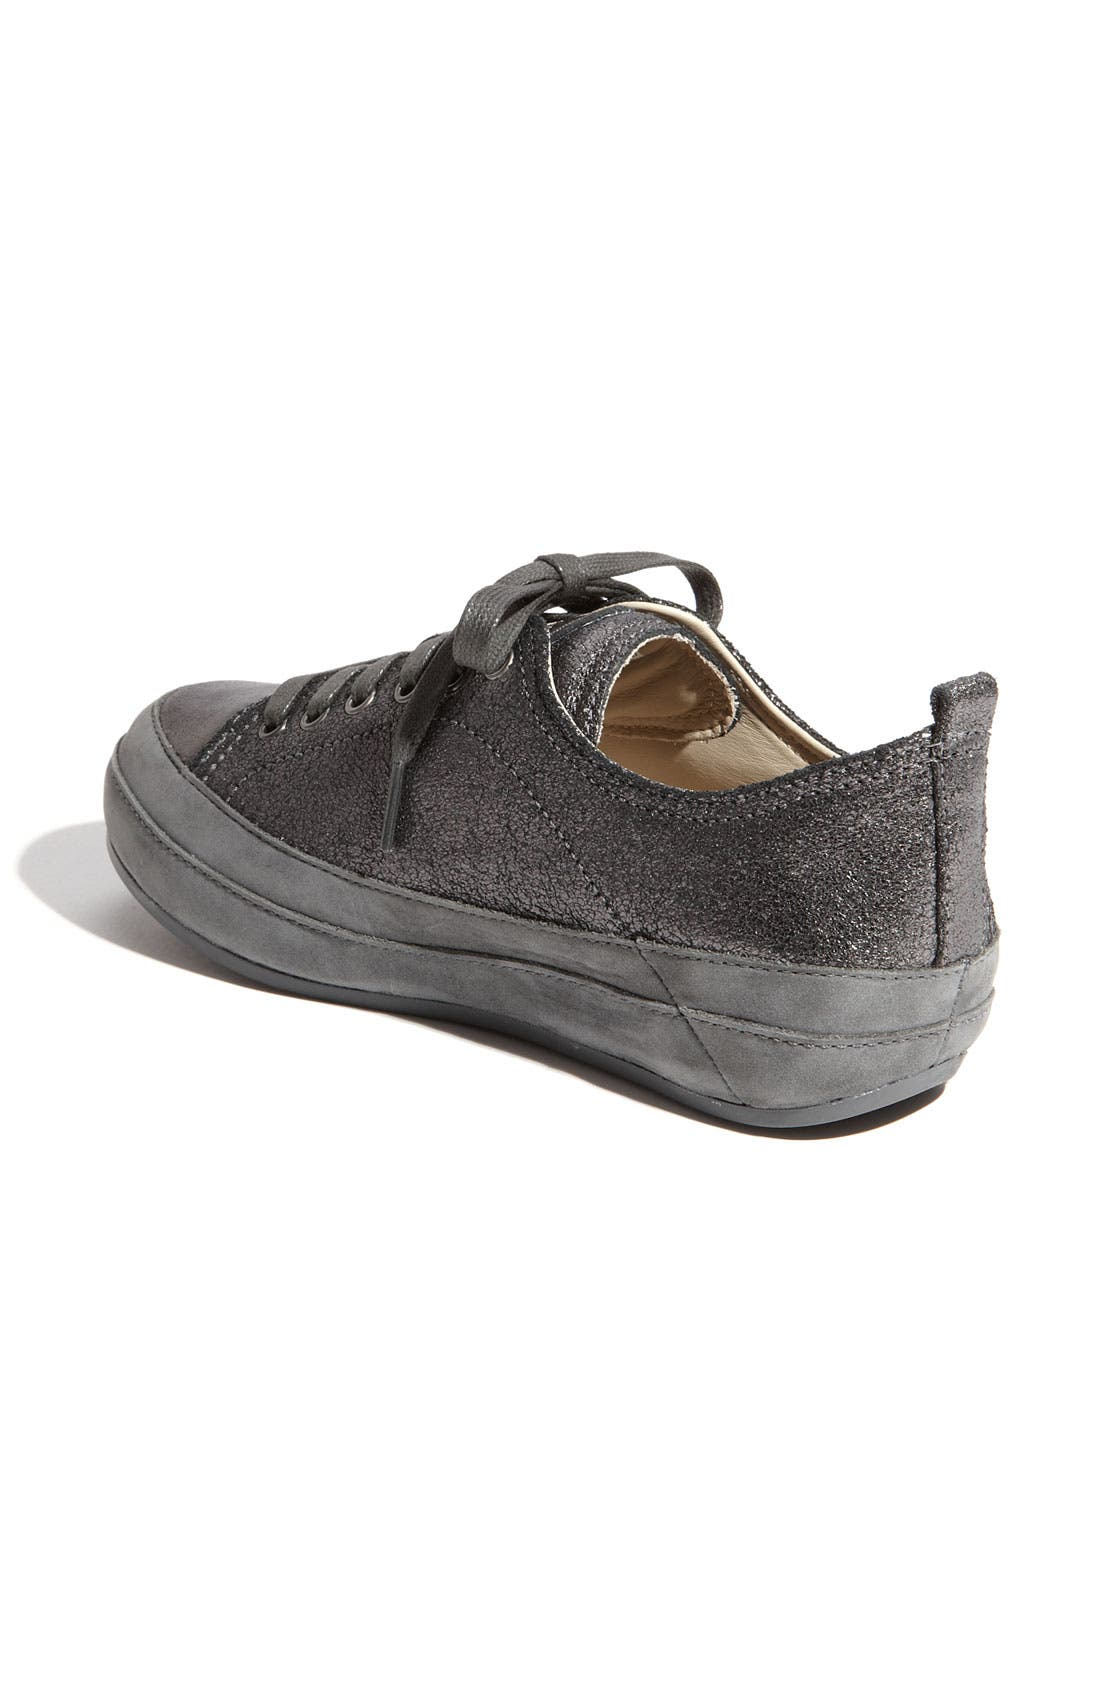 'Supertone<sup>™</sup> Luxe' Sneaker,                             Alternate thumbnail 3, color,                             026